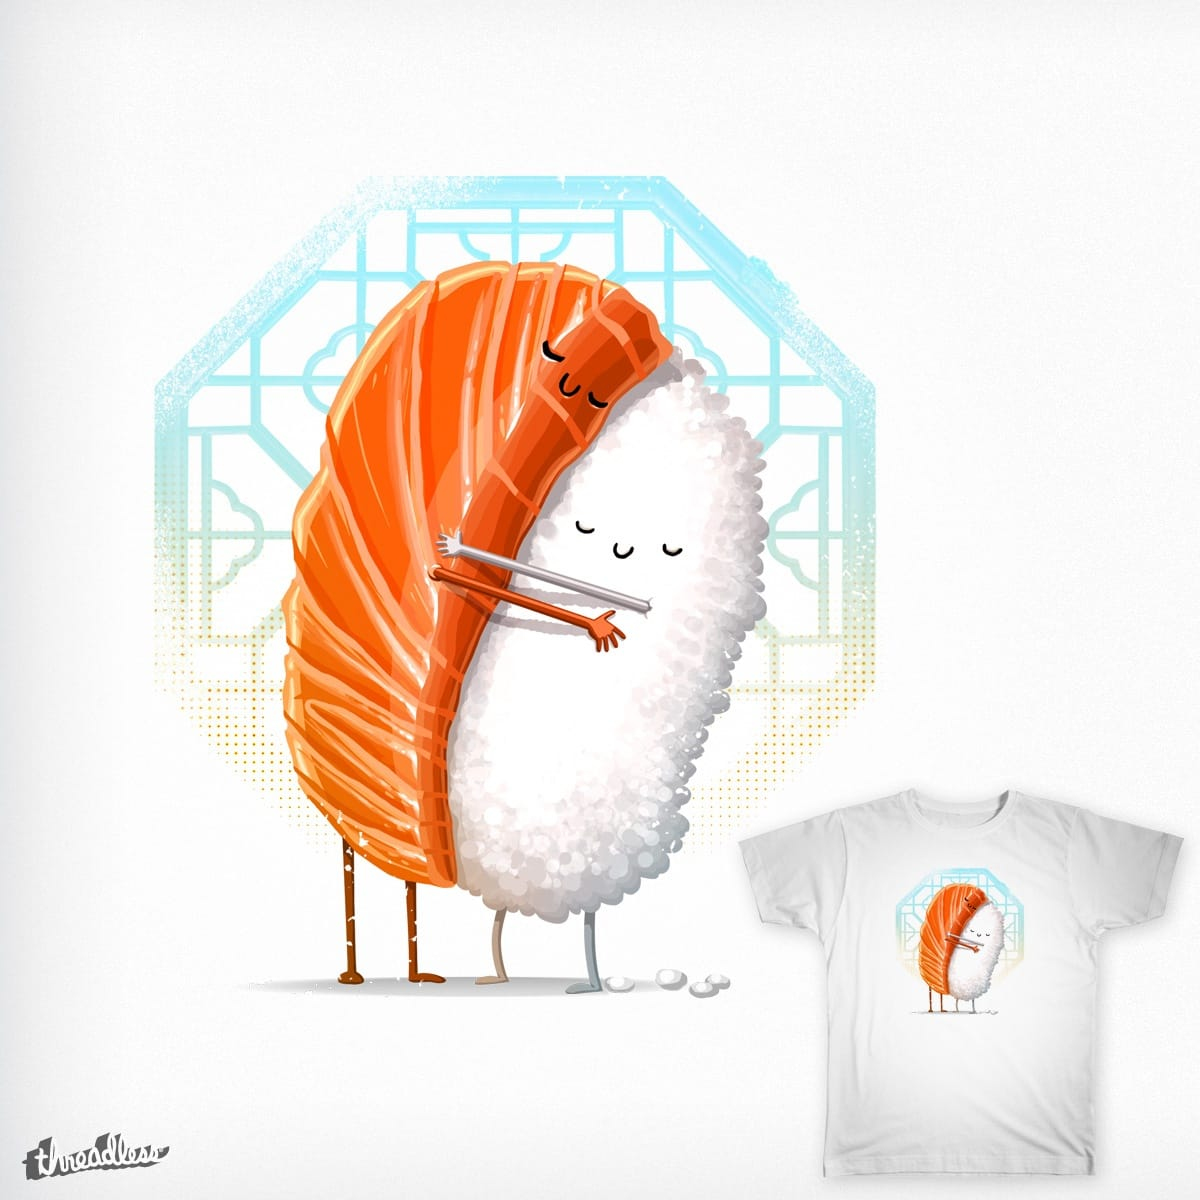 Sushi Hug by andrefmuller and tihmoller on Threadless